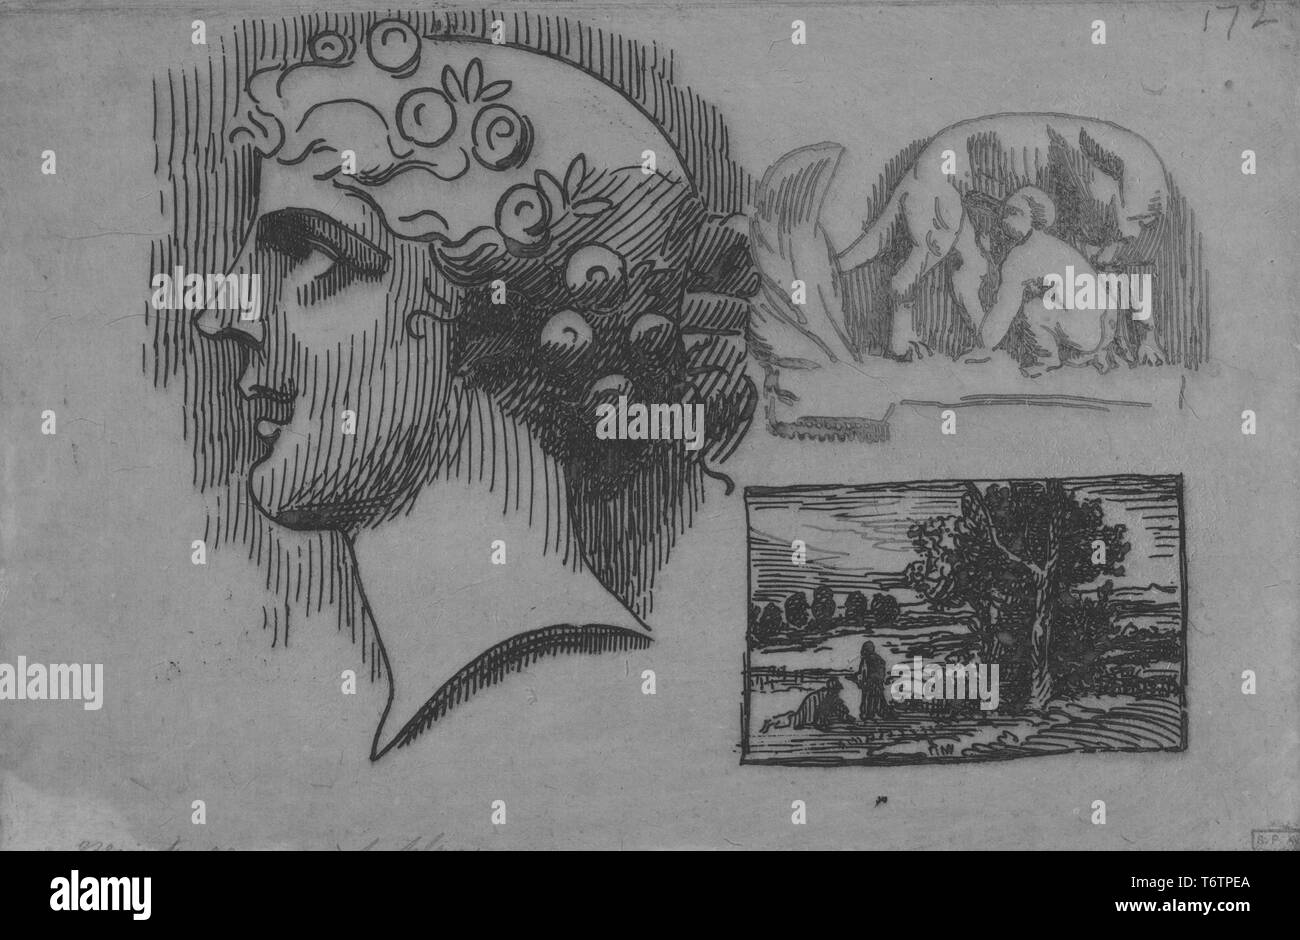 Three black and white etchings on a single page; depicting (left) a classically styled female head, in profile, wearing a decorative floral wreath; (top right) a she-wolf suckling a child, likely referring to Romulus, the legendary founder of Rome; (lower right) a landscape constrained to a small rectangle; titled 'Louve allaitant un enfant, tete de profil, et paysage' (She-Wolf Suckling a Child, Head in Profile, and Landscape); numbered, by the illustrator Felix Bracquemond, 1867. From the New York Public Library. () - Stock Image